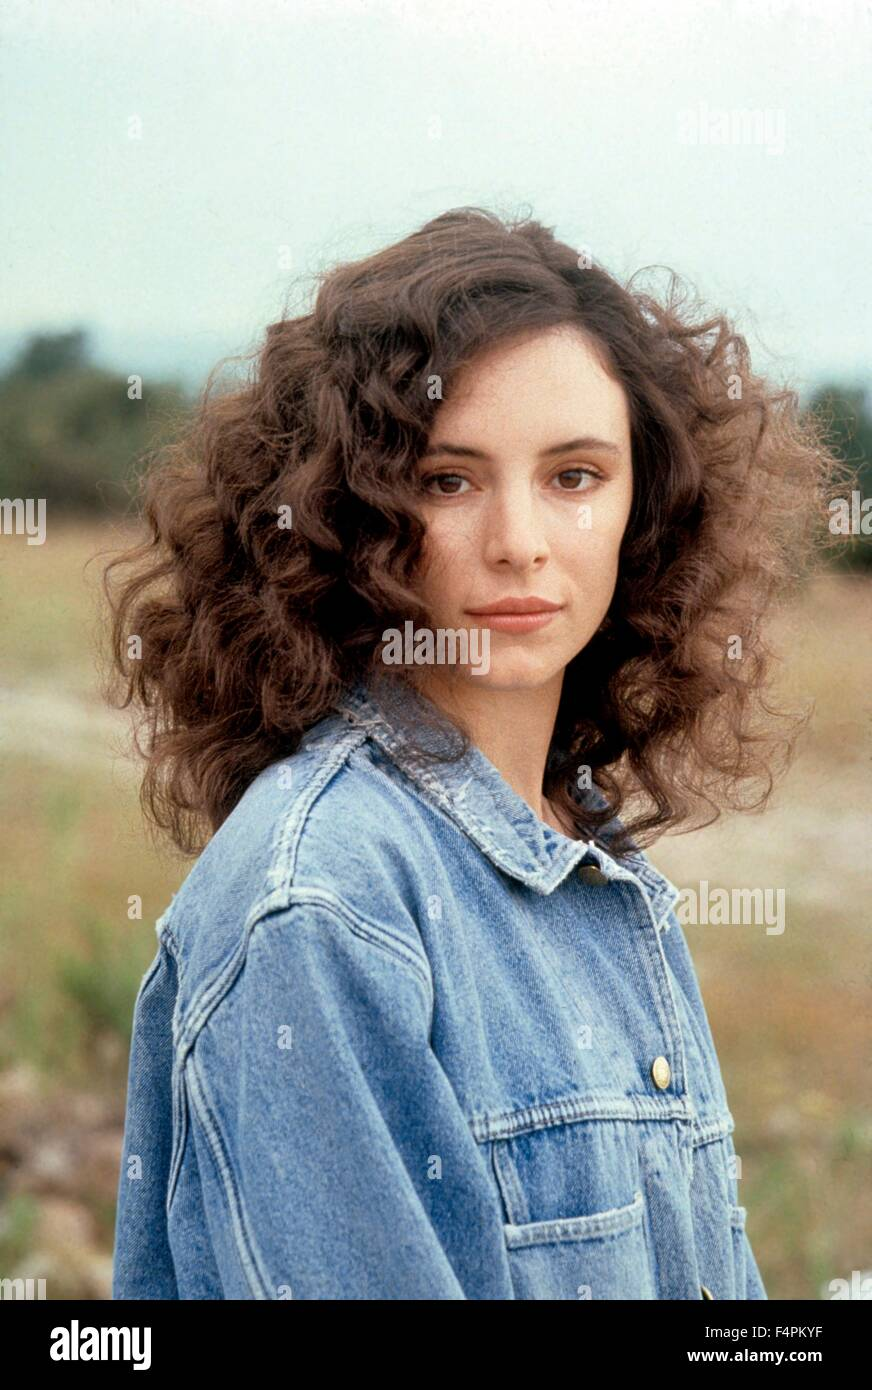 Madeleine Stowe Revenge 1990 Directed By Tony Scott